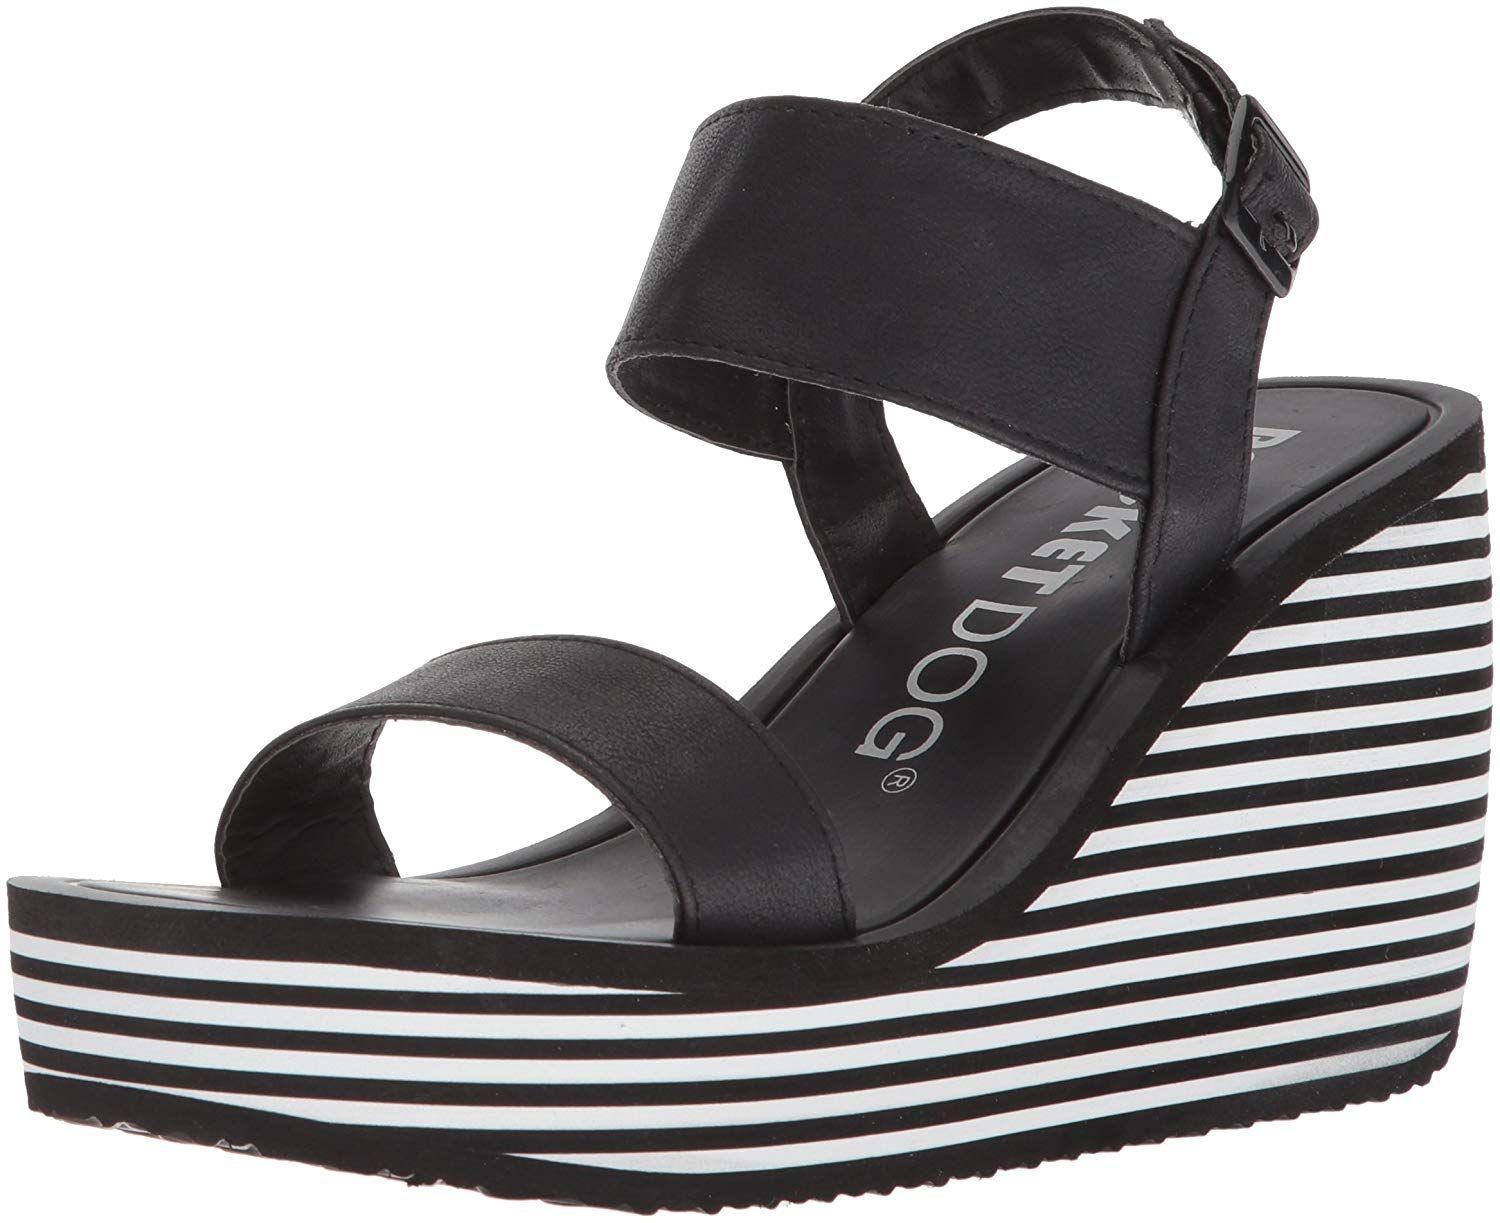 8bcf9b4c252 Rocket Dog. Black Women s Tampico Lewis Pu W striped Eva Wedge Sandal